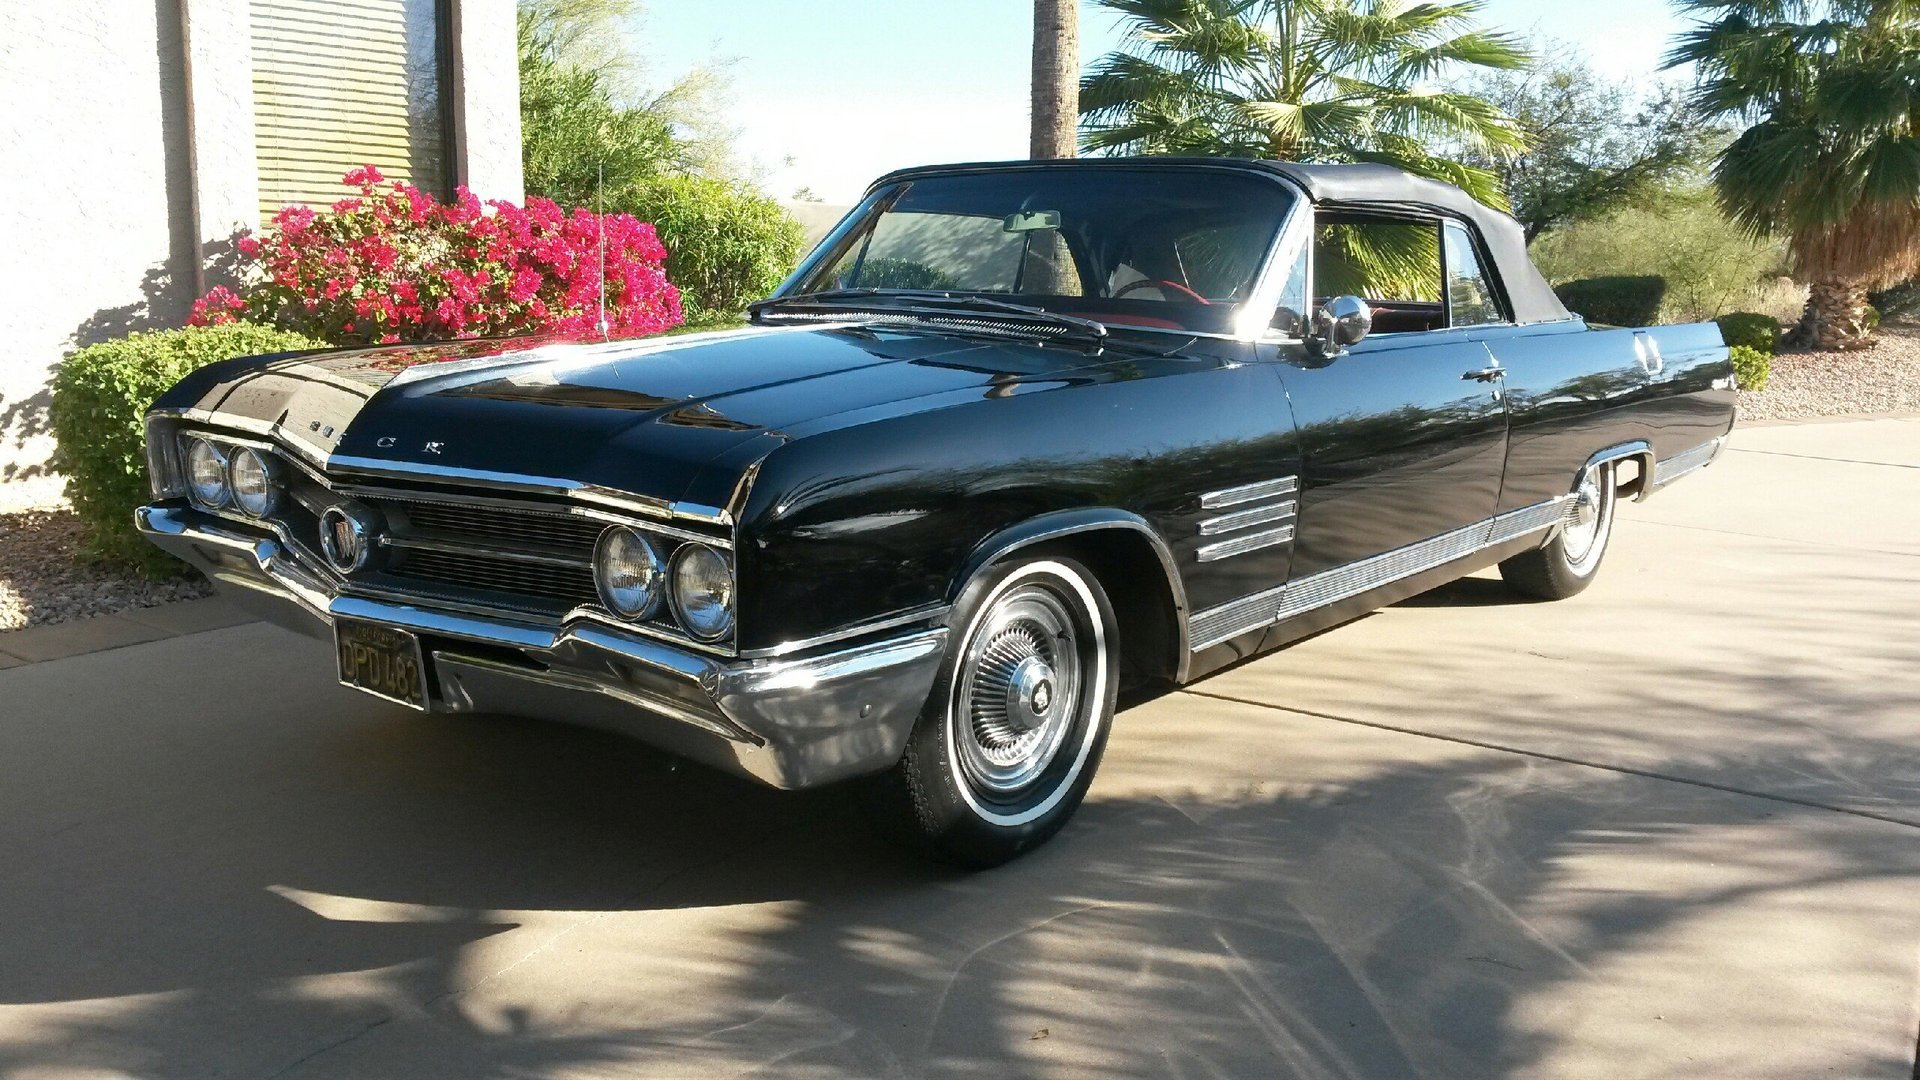 banks ford at dealers gmc for chevrolet nh used cadillac sale in concord buick cars img fusion